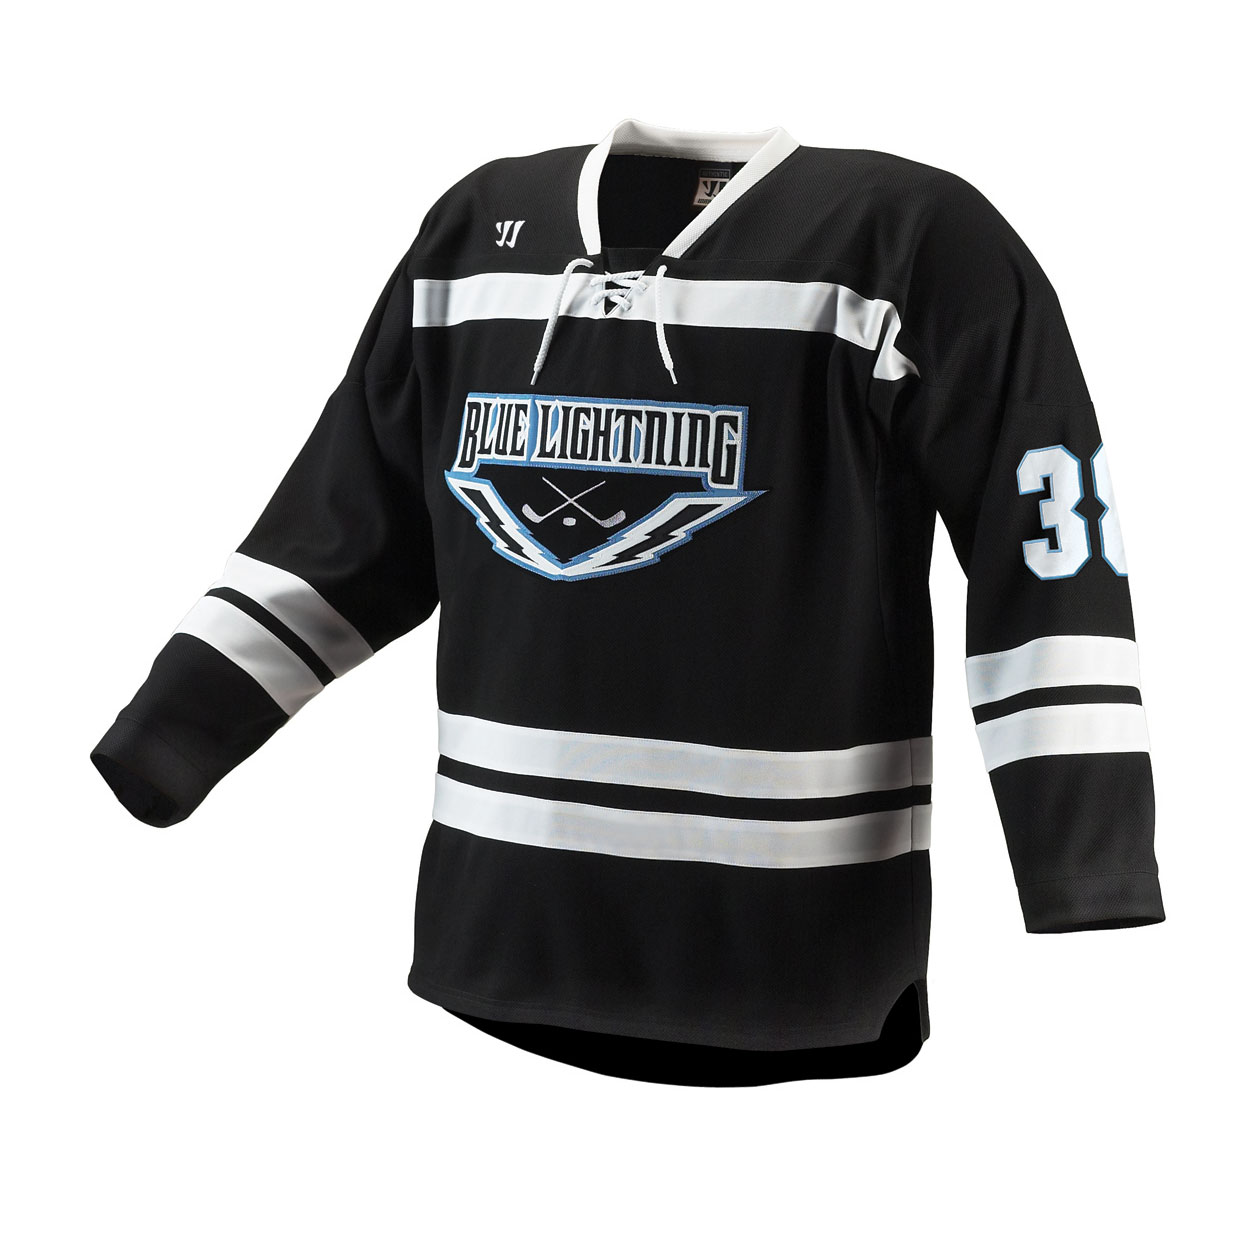 Youth Warrior Turbo Hockey Game Jersey